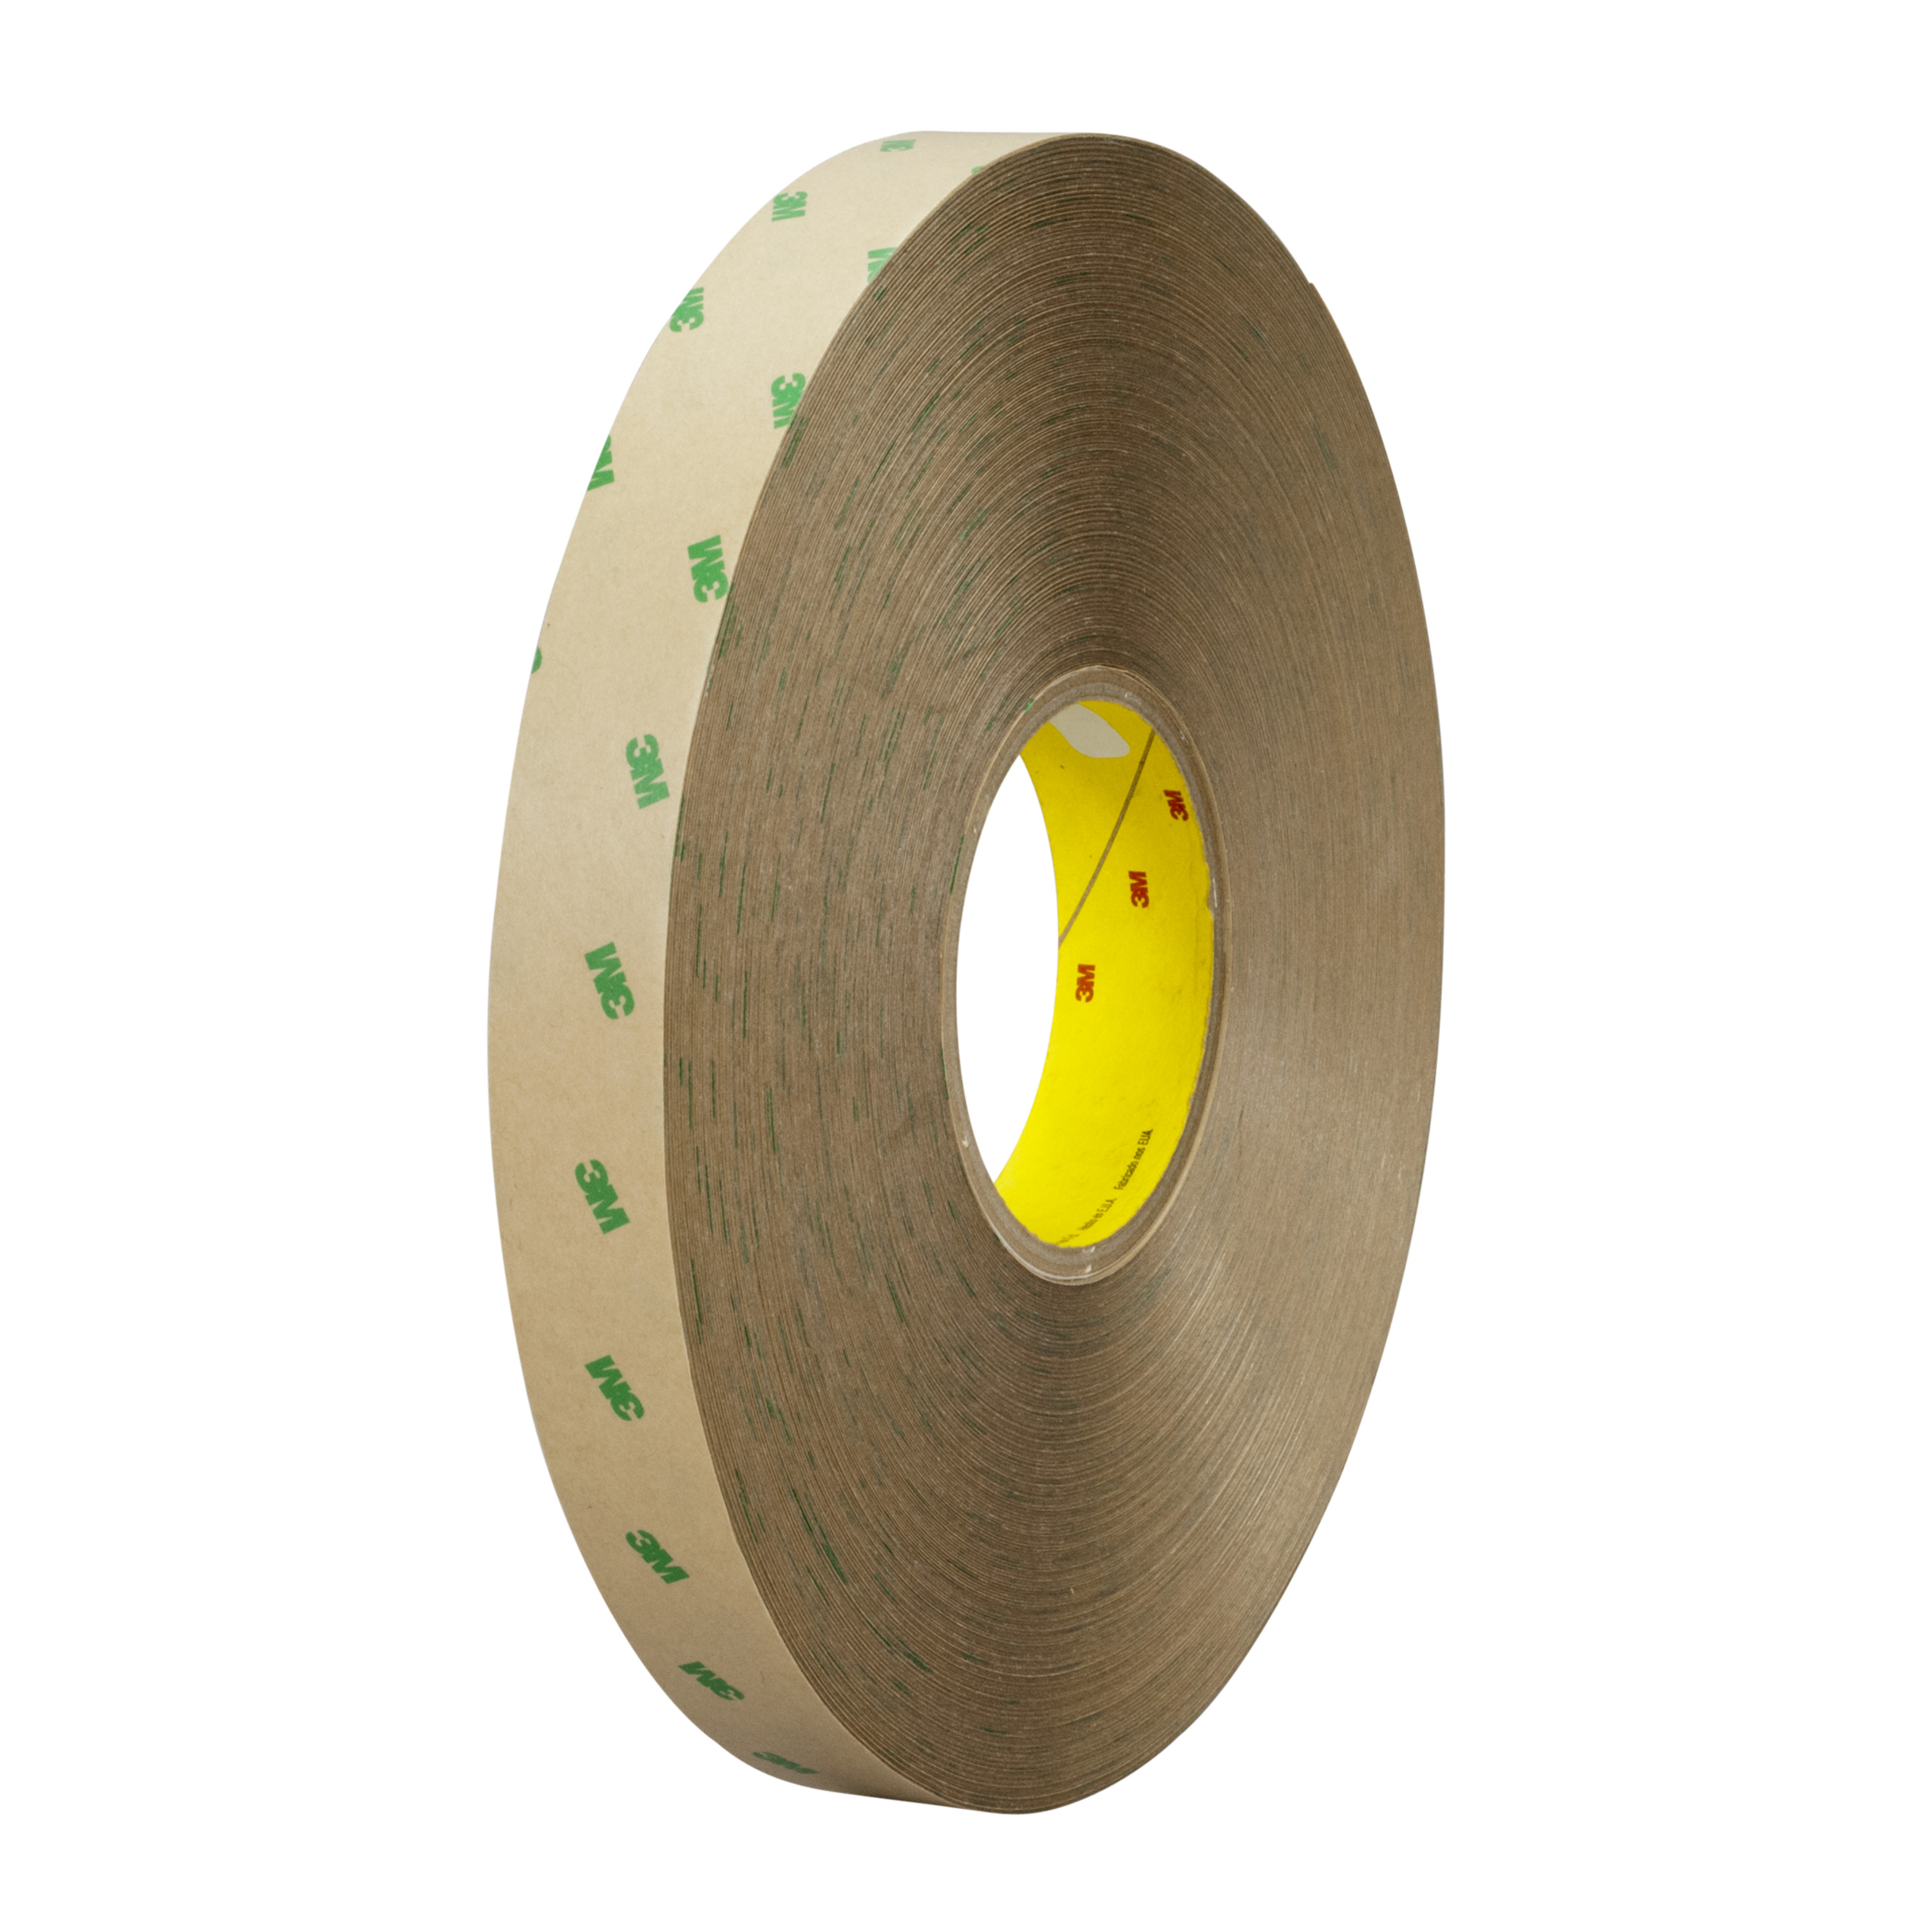 3M™ Adhesive Transfer Tape 9505, Clear, 24 in x 60 yd, 5 mil, 1 roll per case